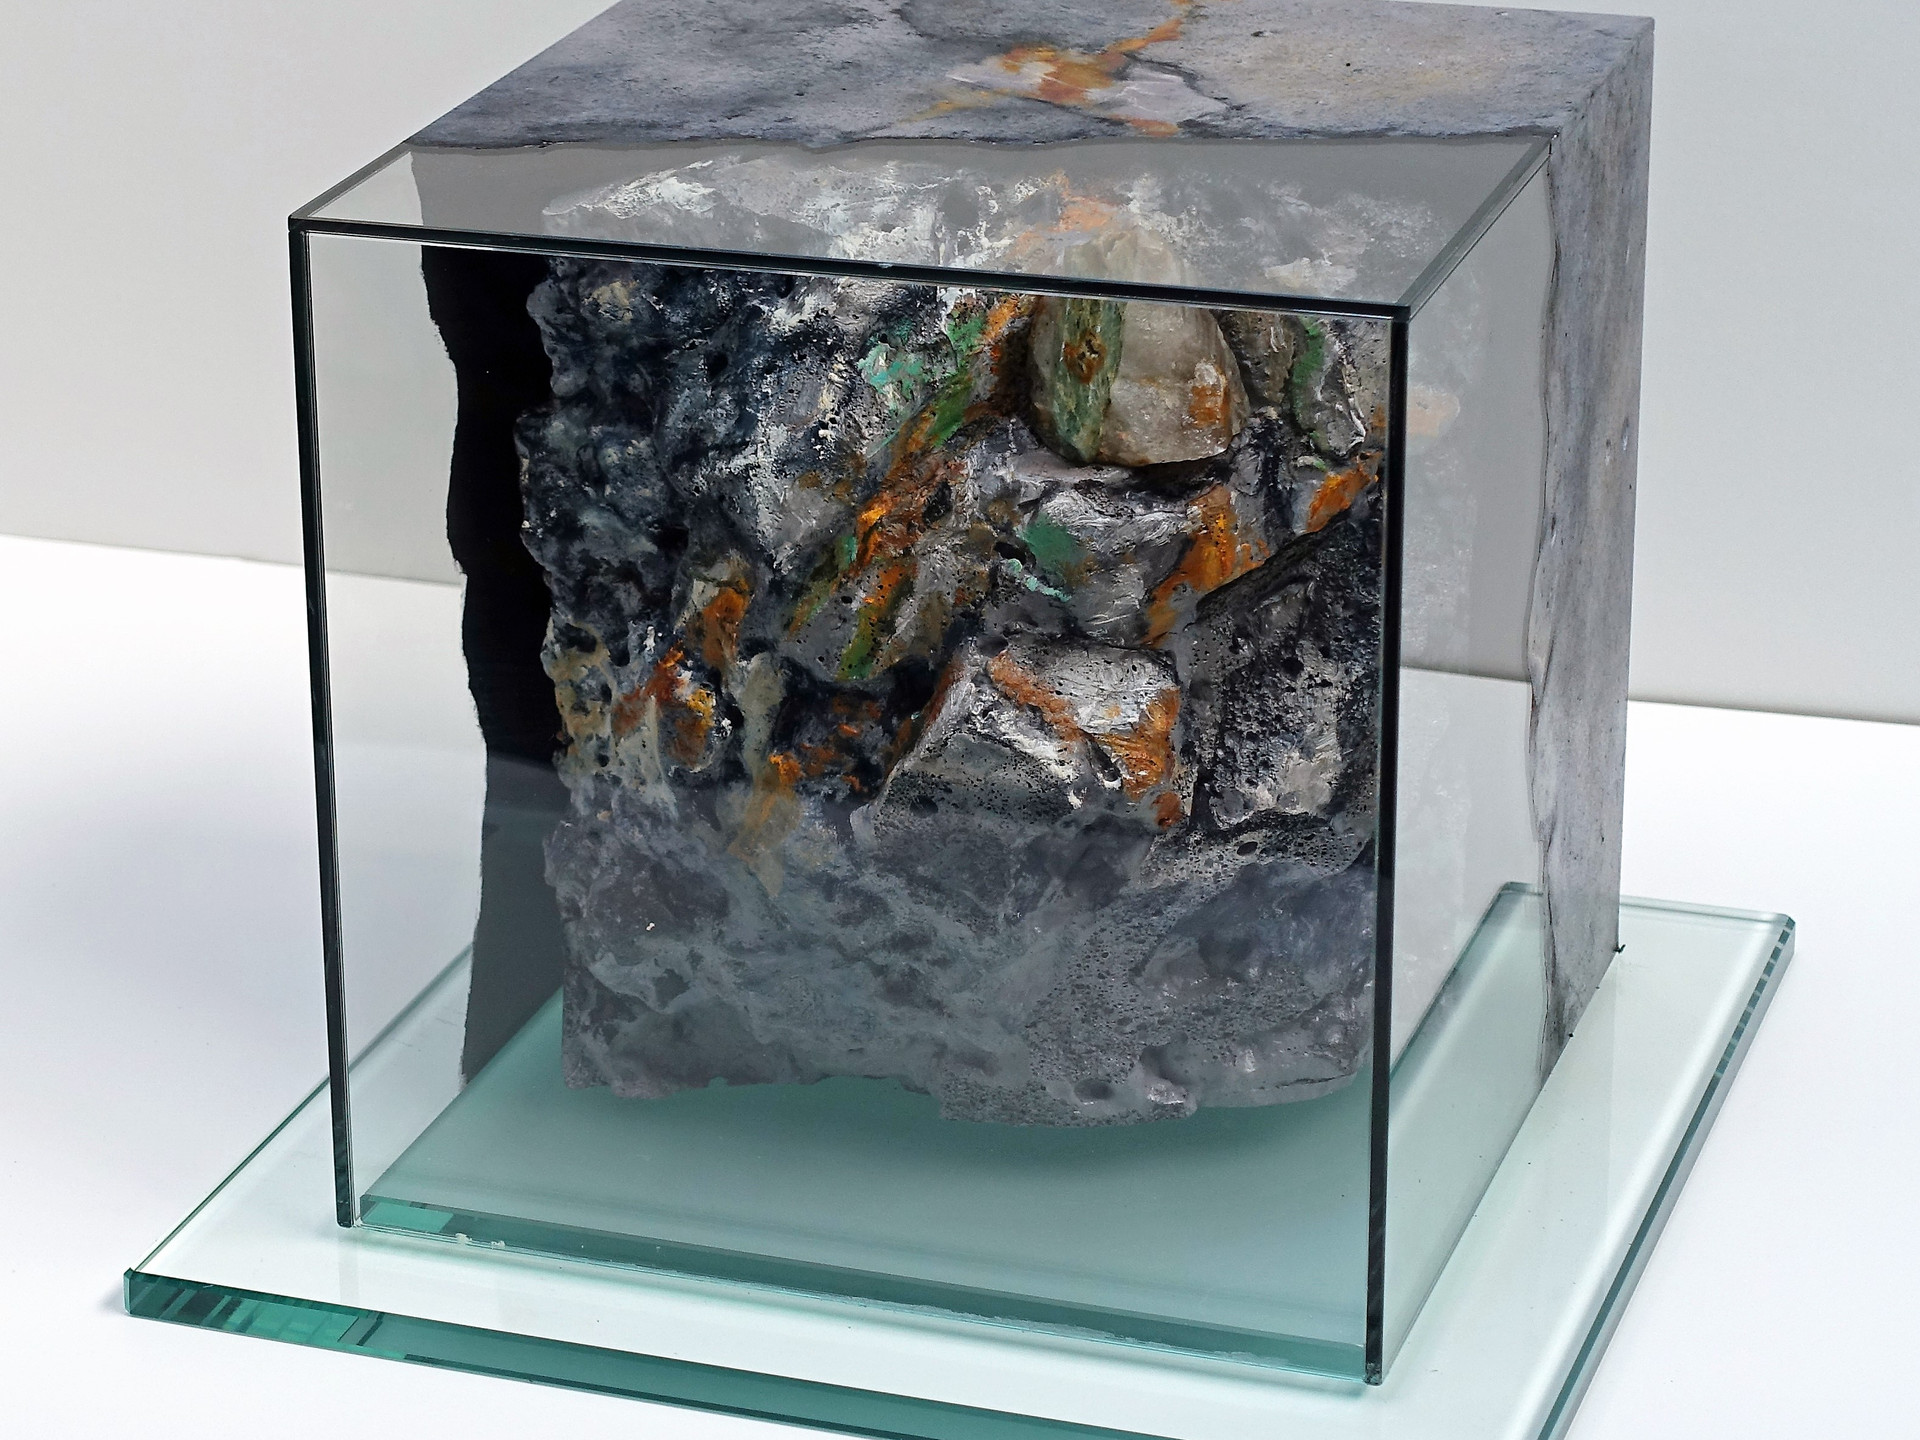 29 mineralIN (4)  25x25x25 cm (inside = mineral embedded in 3D rock imitation,  glass = painted with mineral texture )